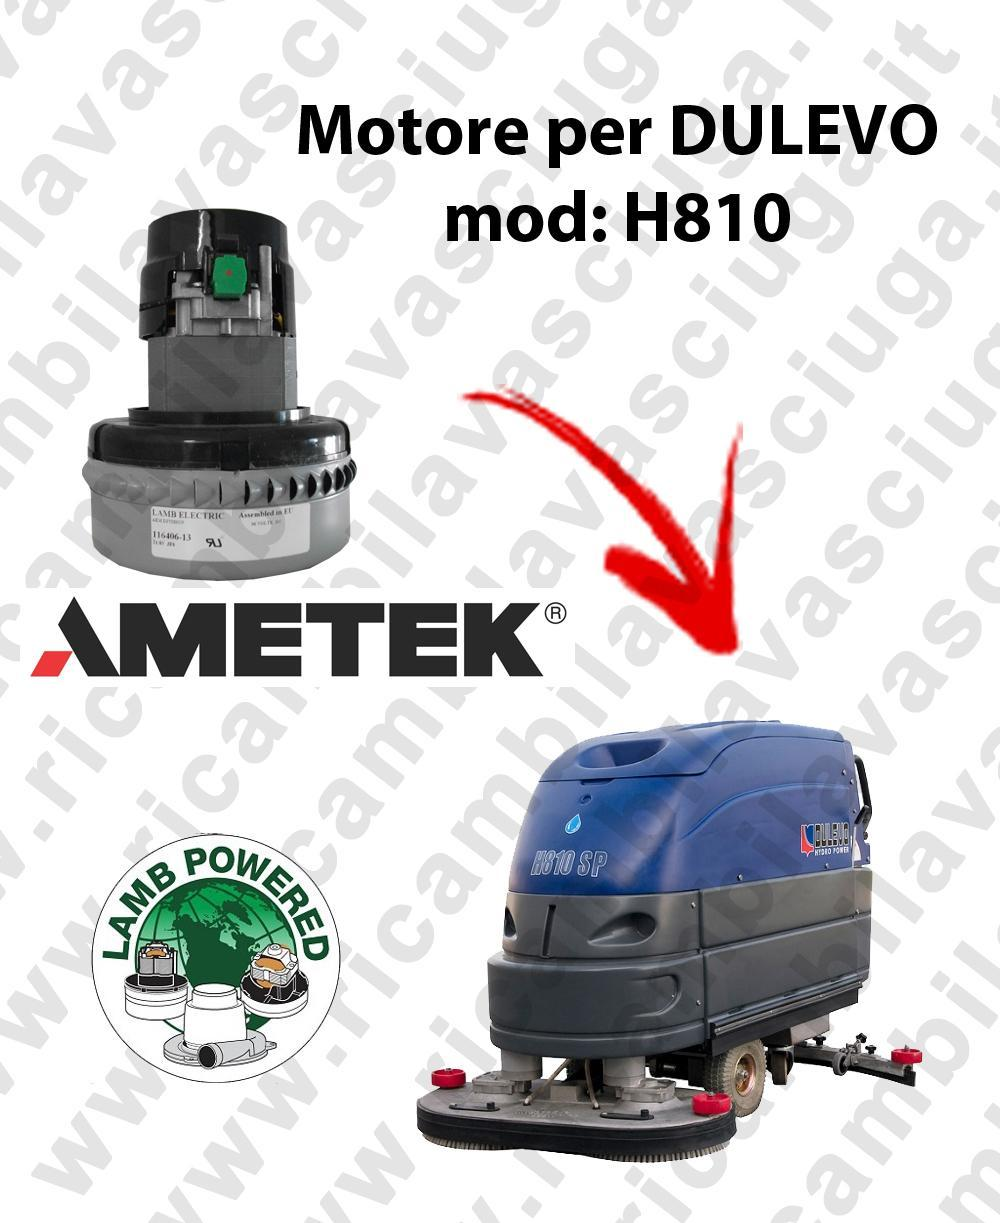 H810 LAMB AMETEK vacuum motor for scrubber dryer DULEVO